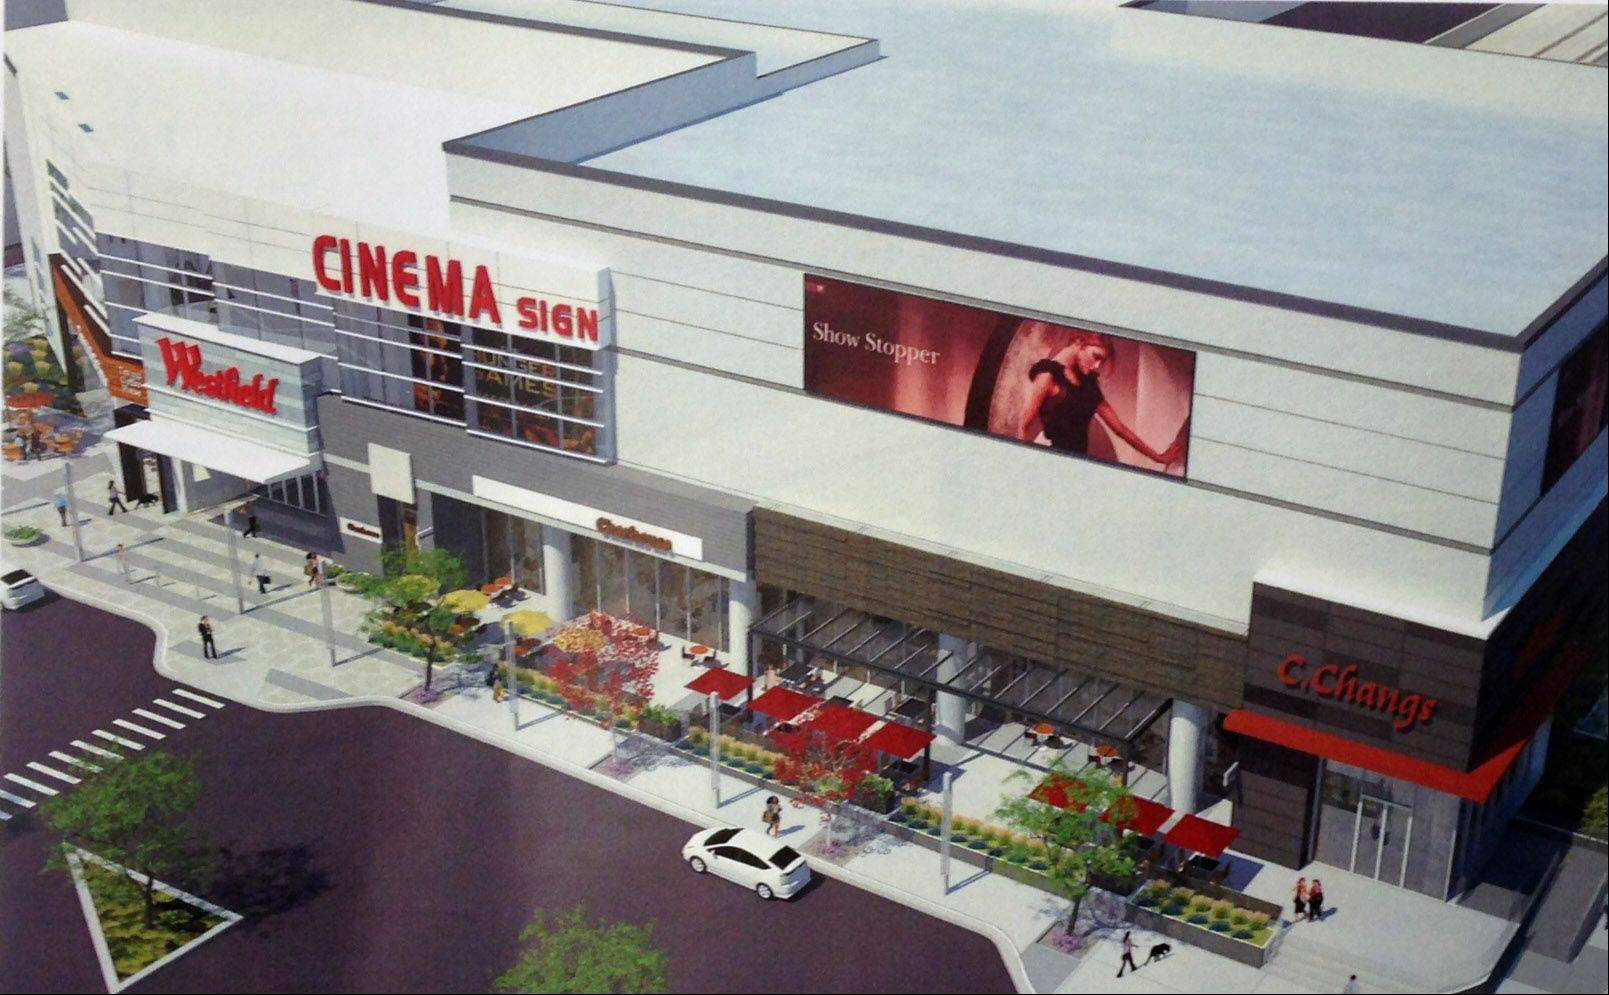 A 12-screen cinema is considered a key element of a proposed $40 million to $50 million renovation and expansion at Westfield Hawthorn mall in Vernon Hills.